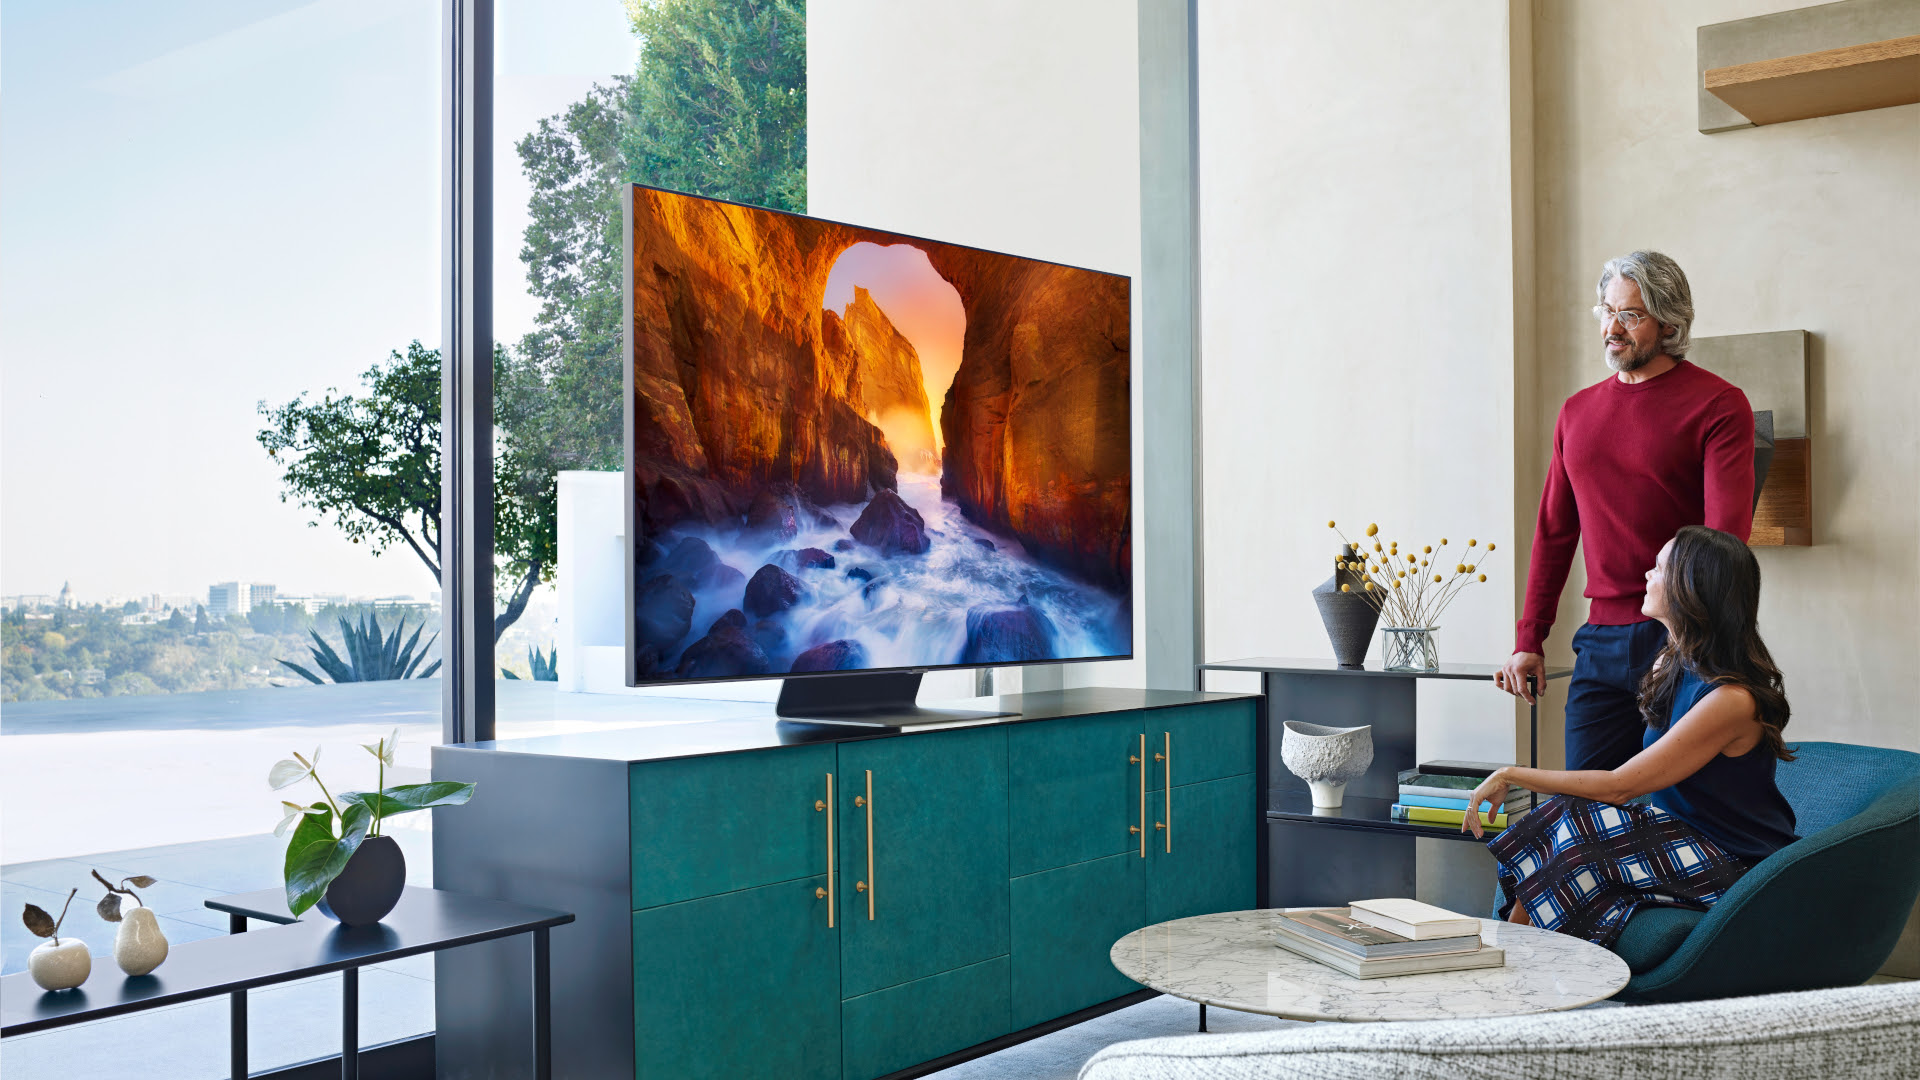 Best 4K TV 2019: Your definitive guide to the top Ultra-HD TVs